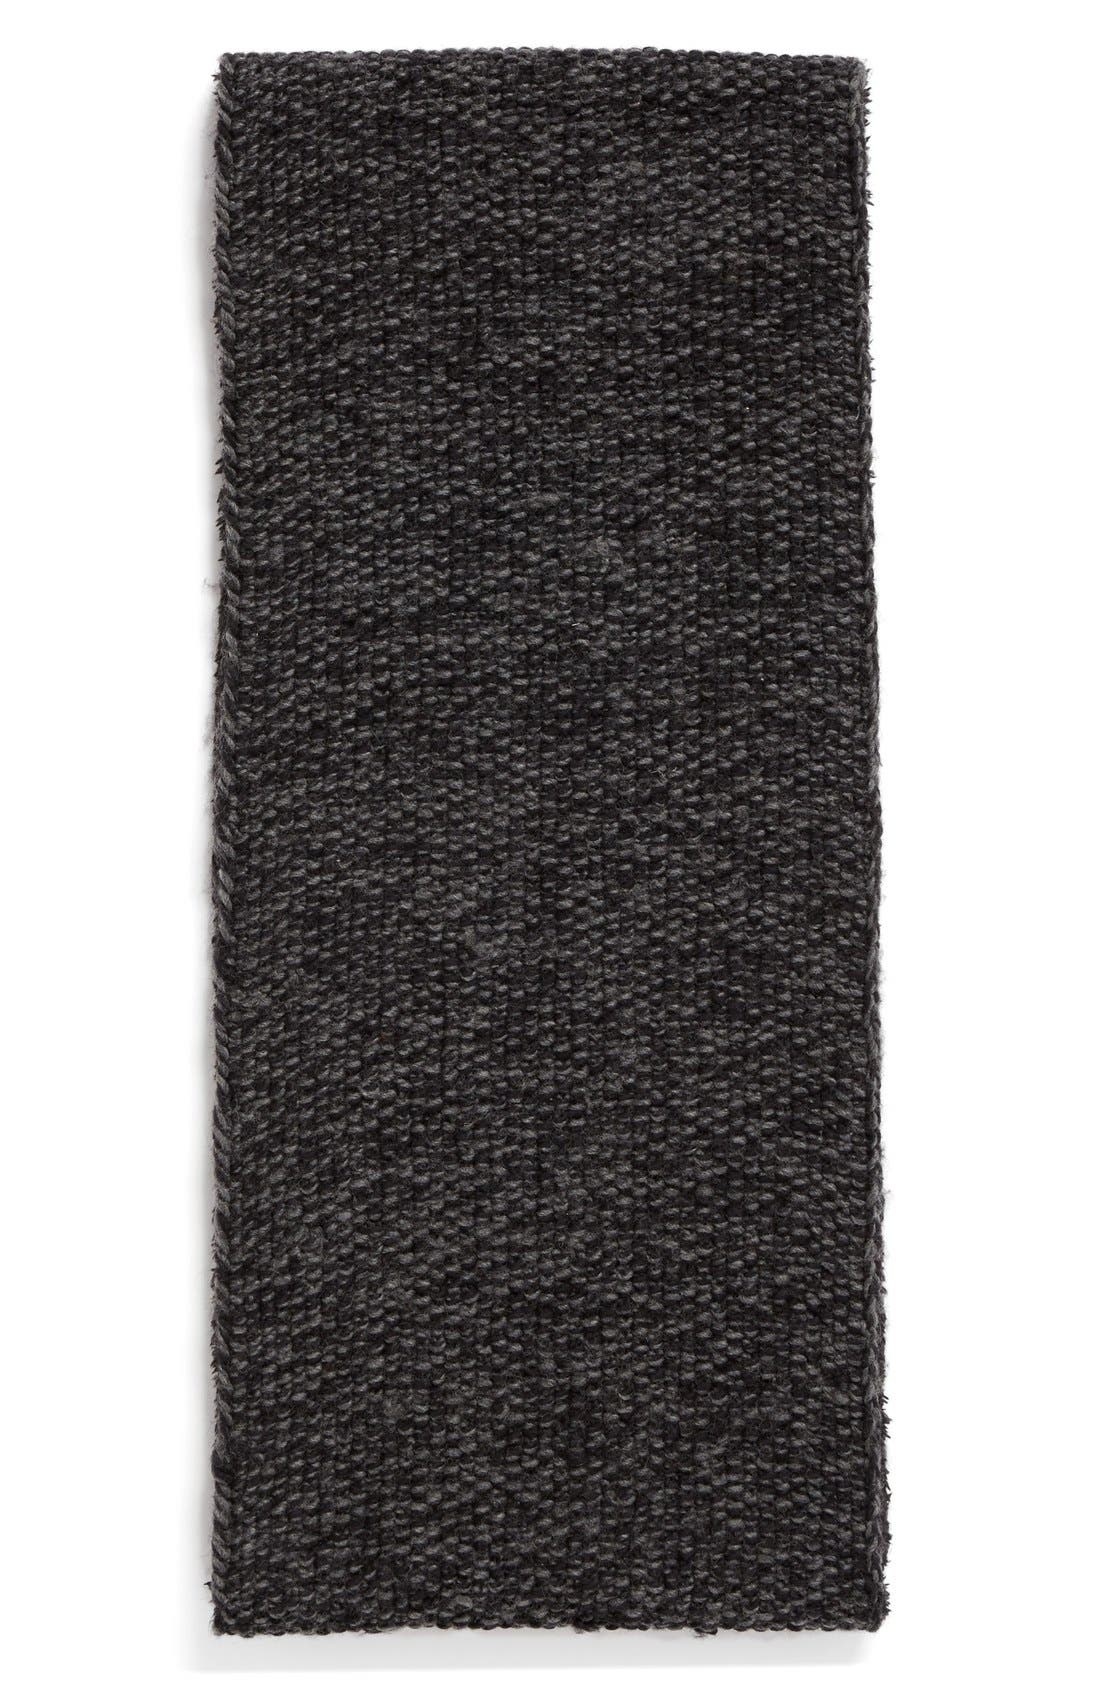 Knit Wool Infinity Scarf,                             Alternate thumbnail 3, color,